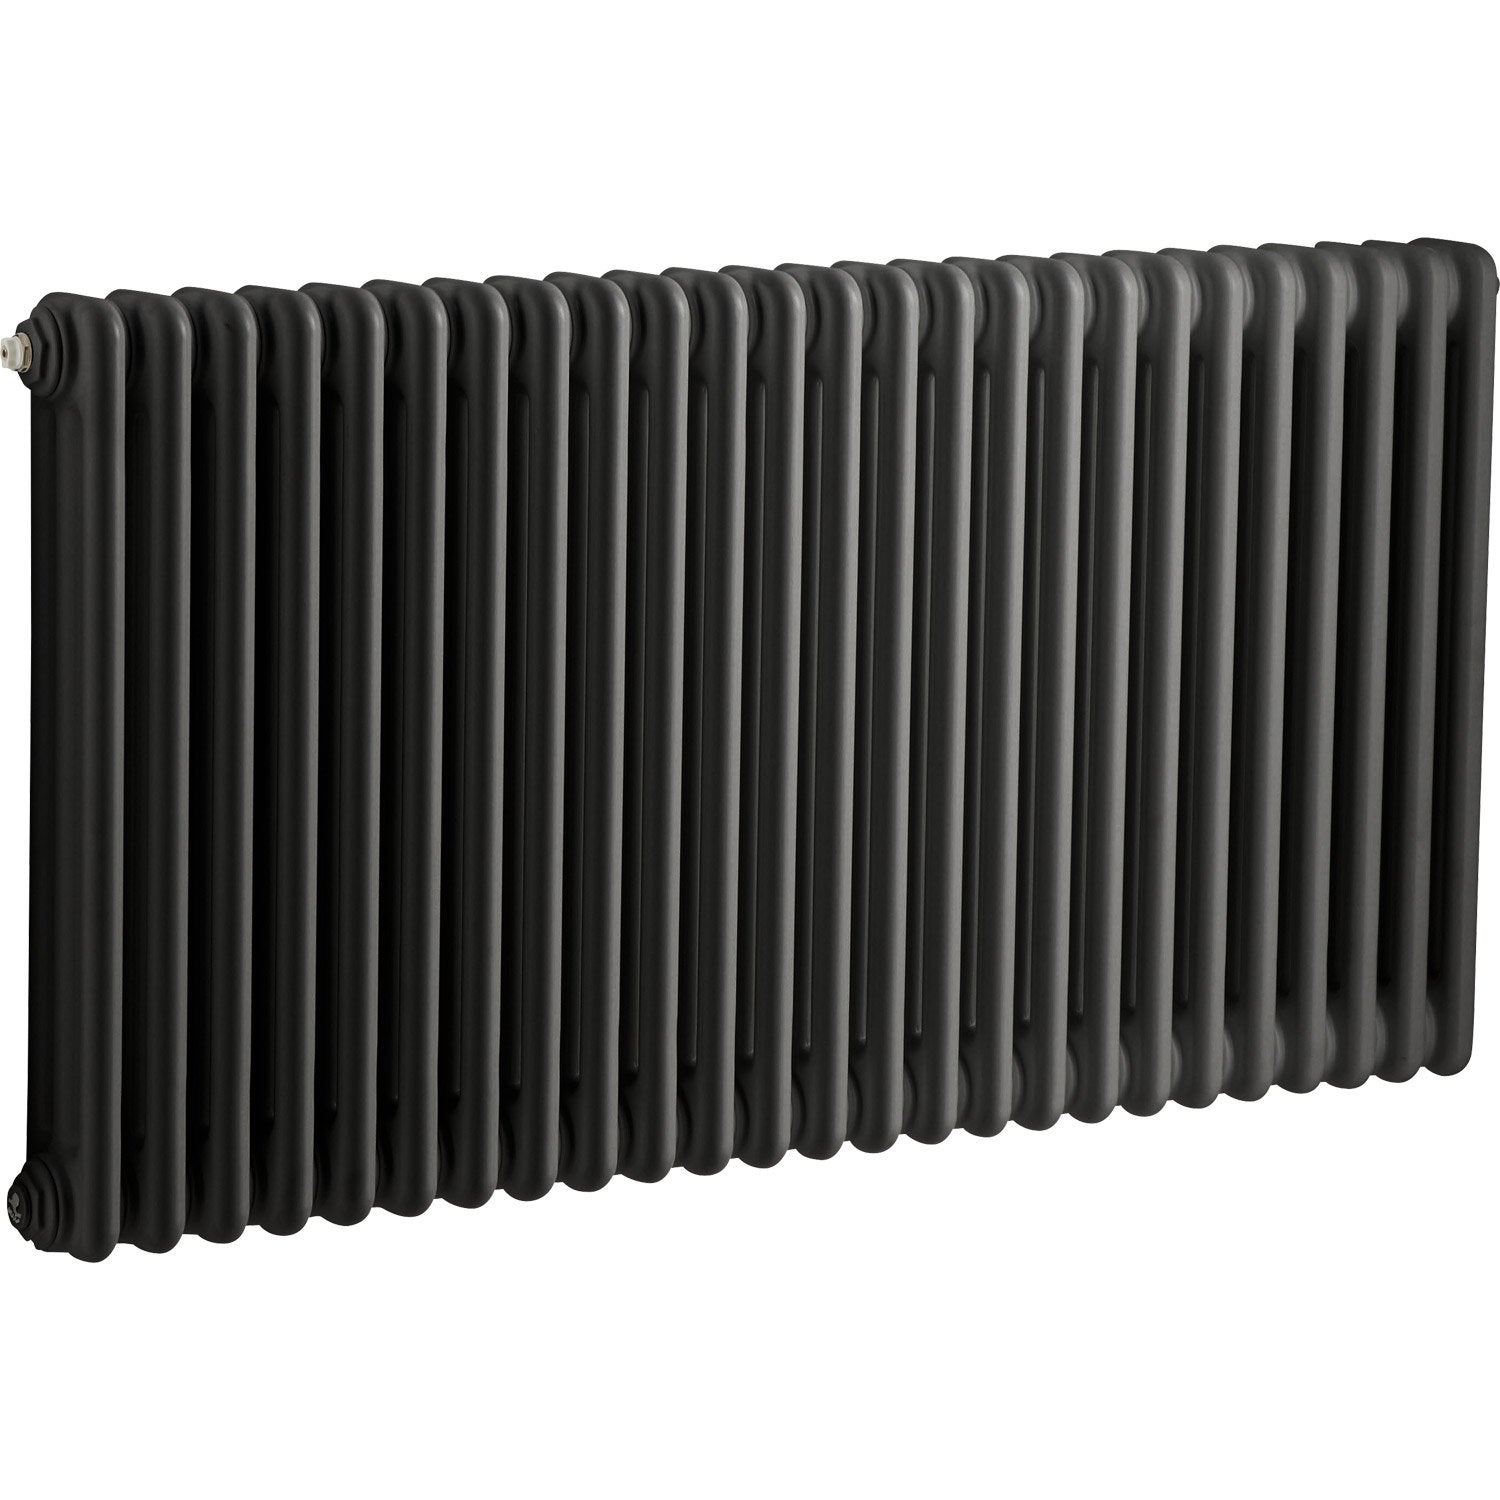 radiateur electrique vertical brico depot. Black Bedroom Furniture Sets. Home Design Ideas